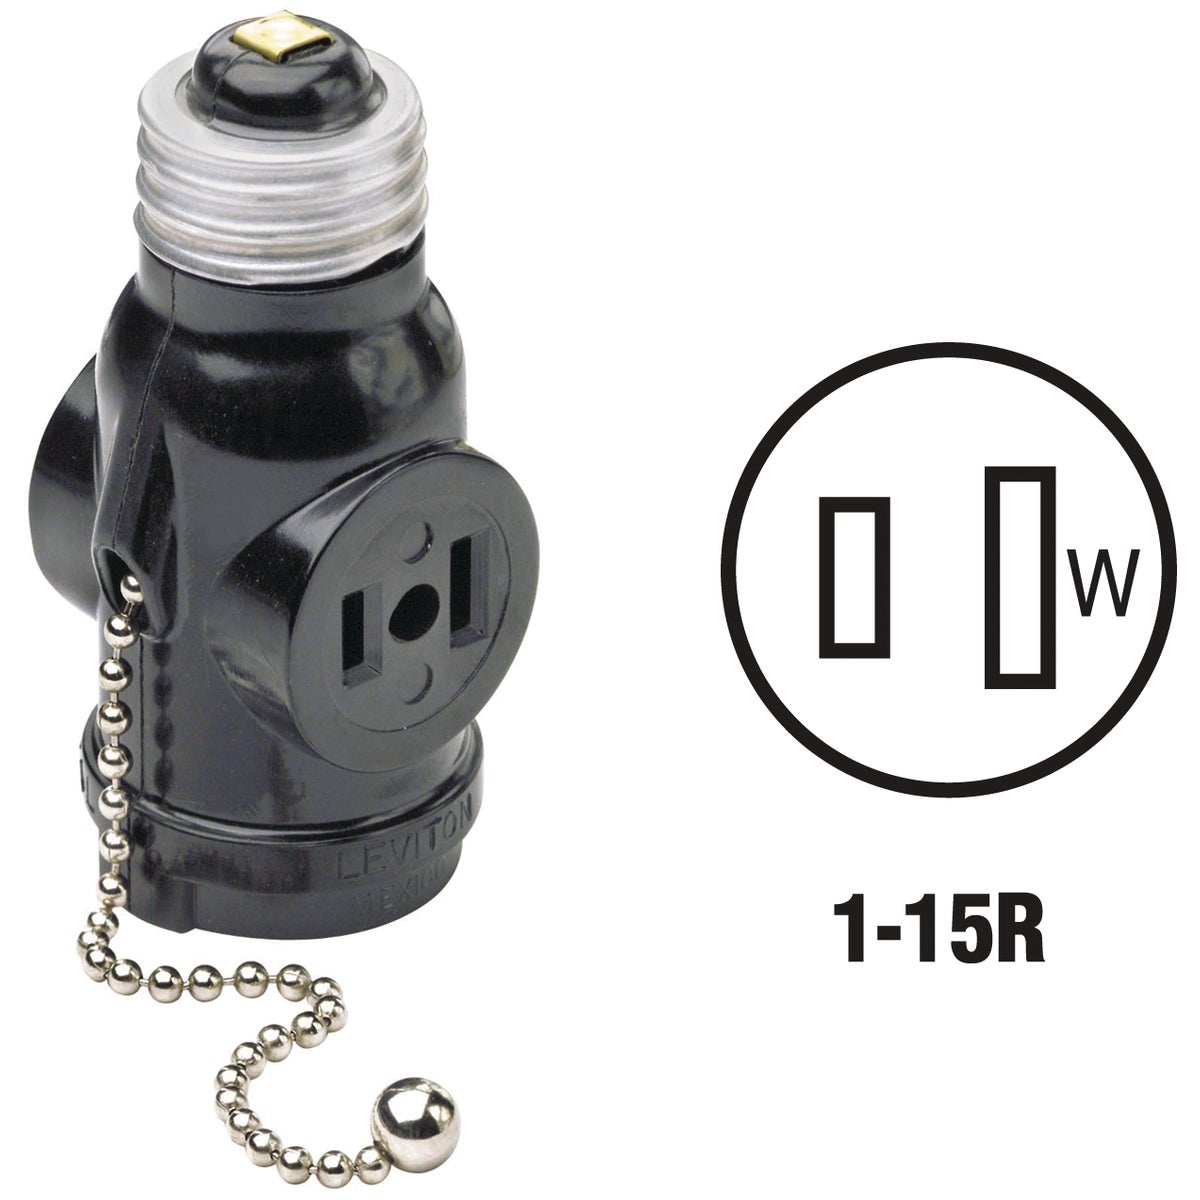 BLK SOCKET ADAPTER - 1406 by Leviton Mfg Co